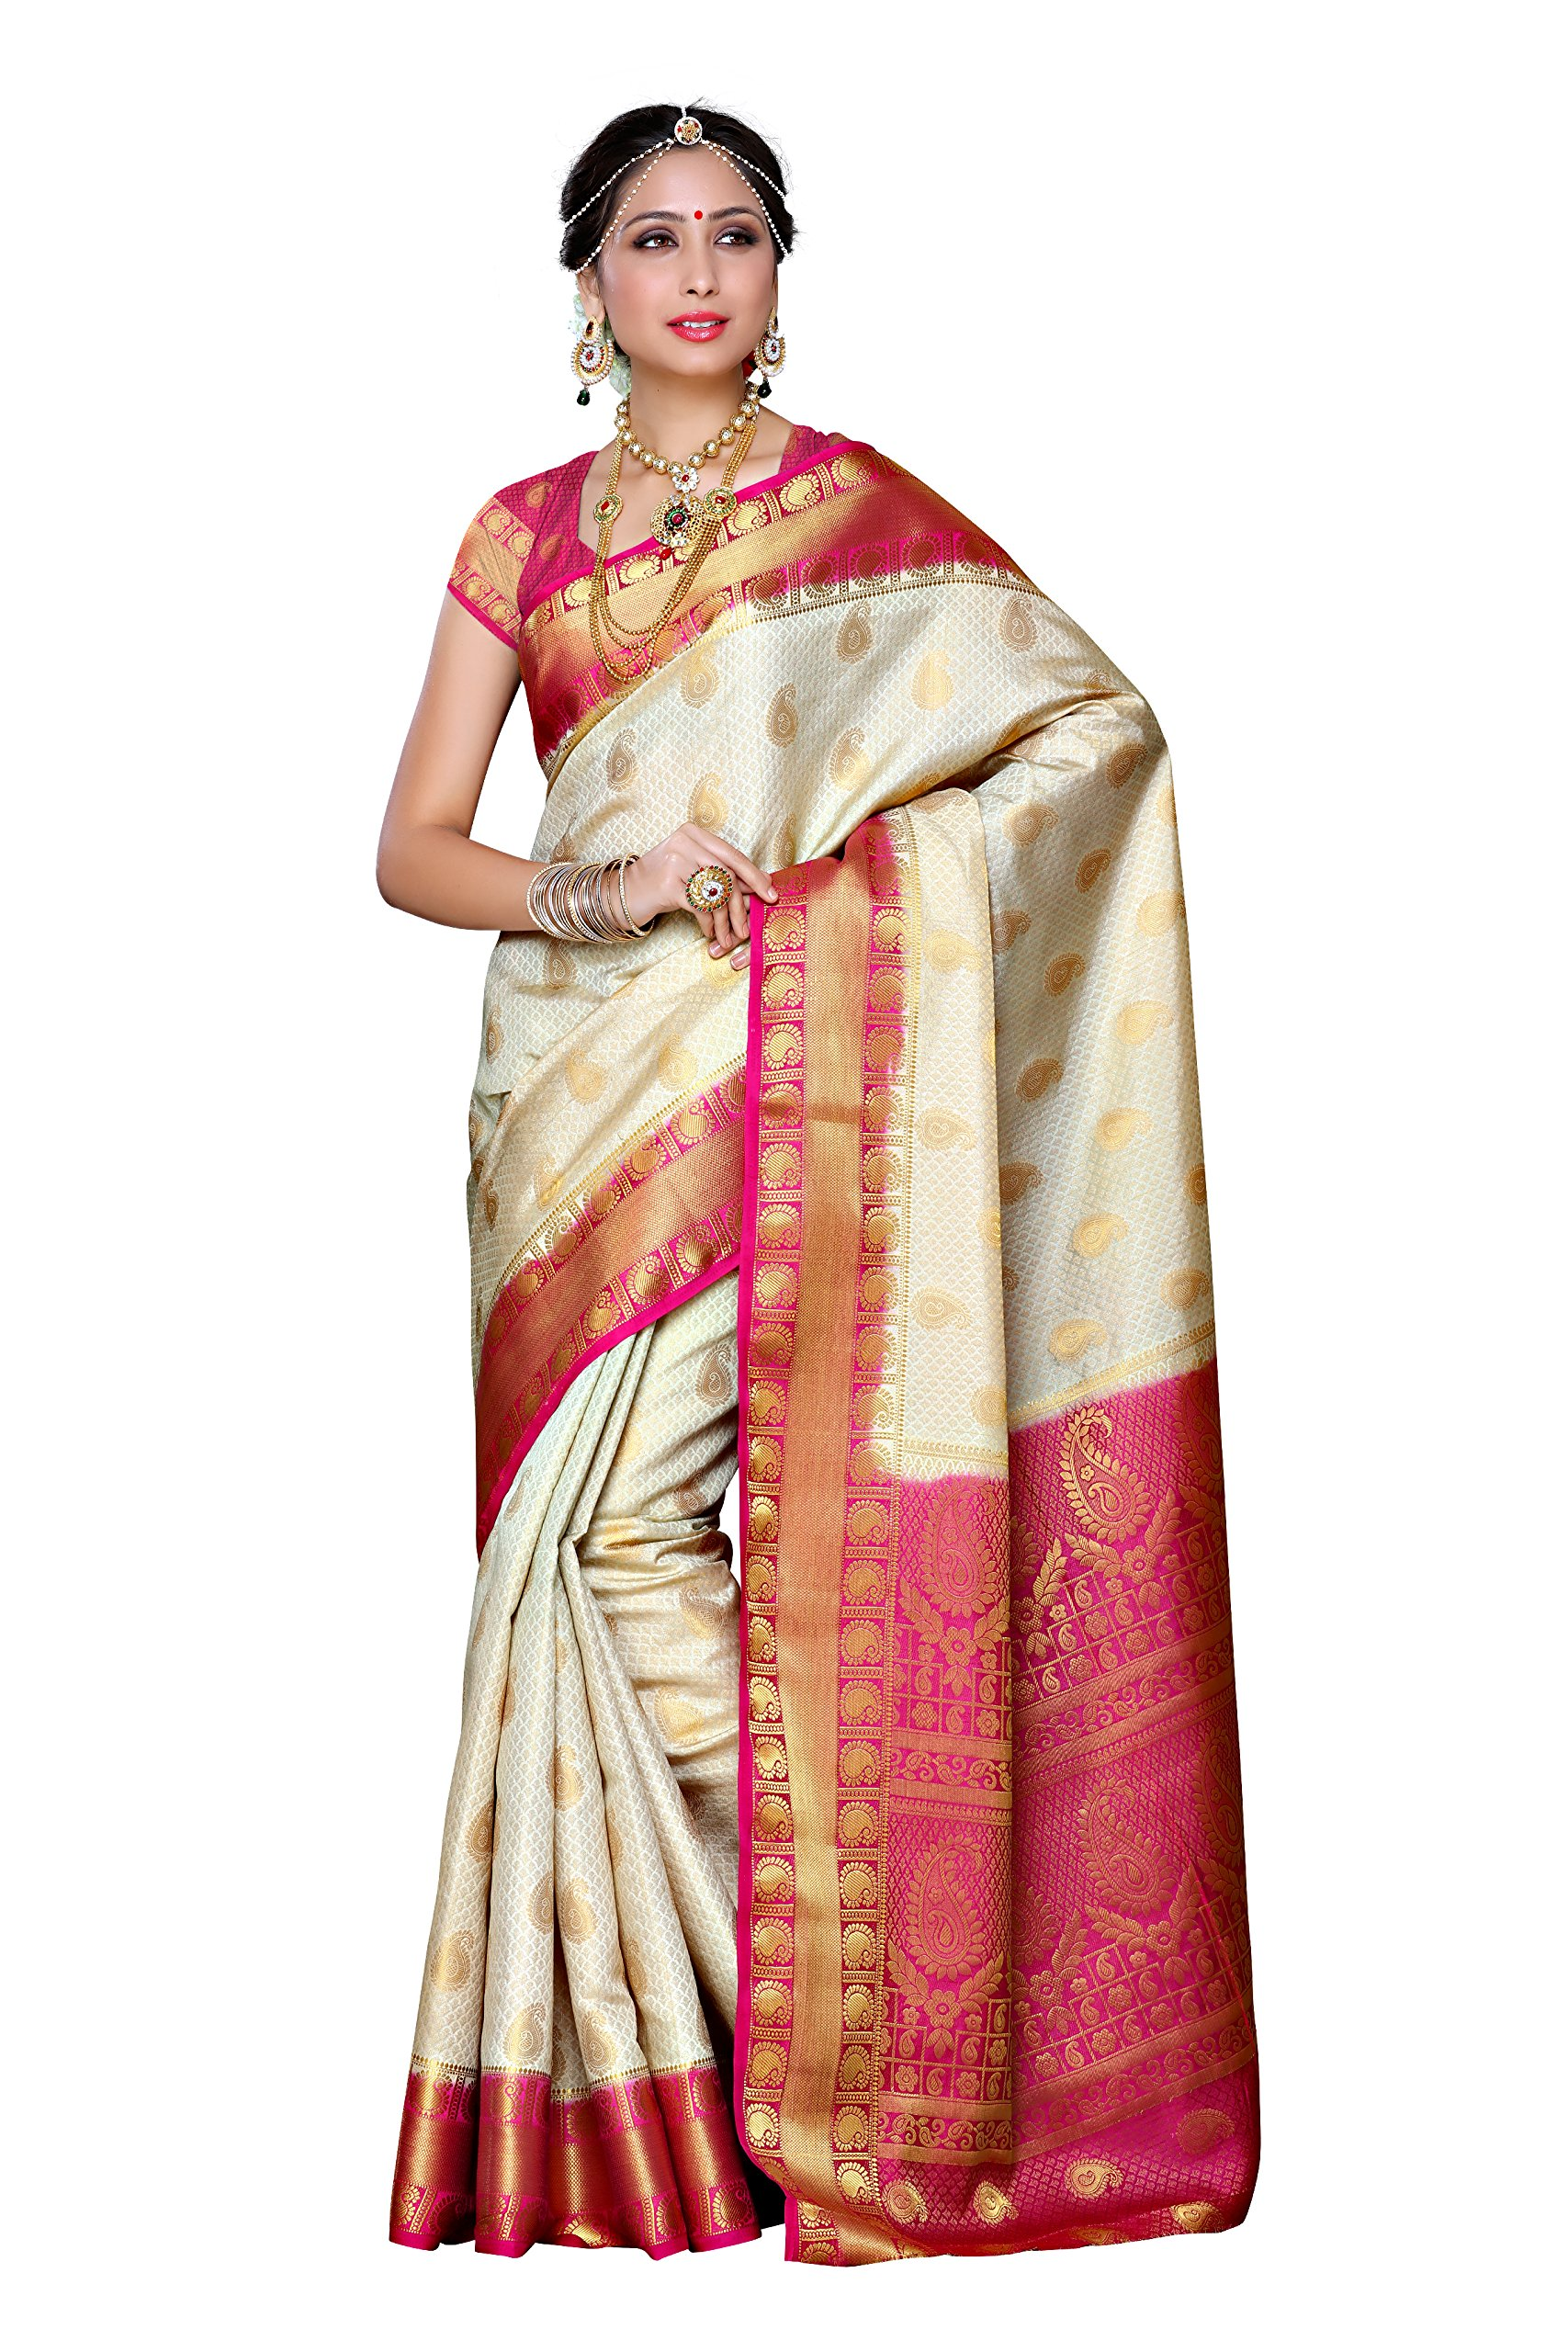 Mimosa Women's Traditional Art Silk Saree Kanjivaram Style With Blouse Color:Off White(3300-225-HWT-RNI) product image